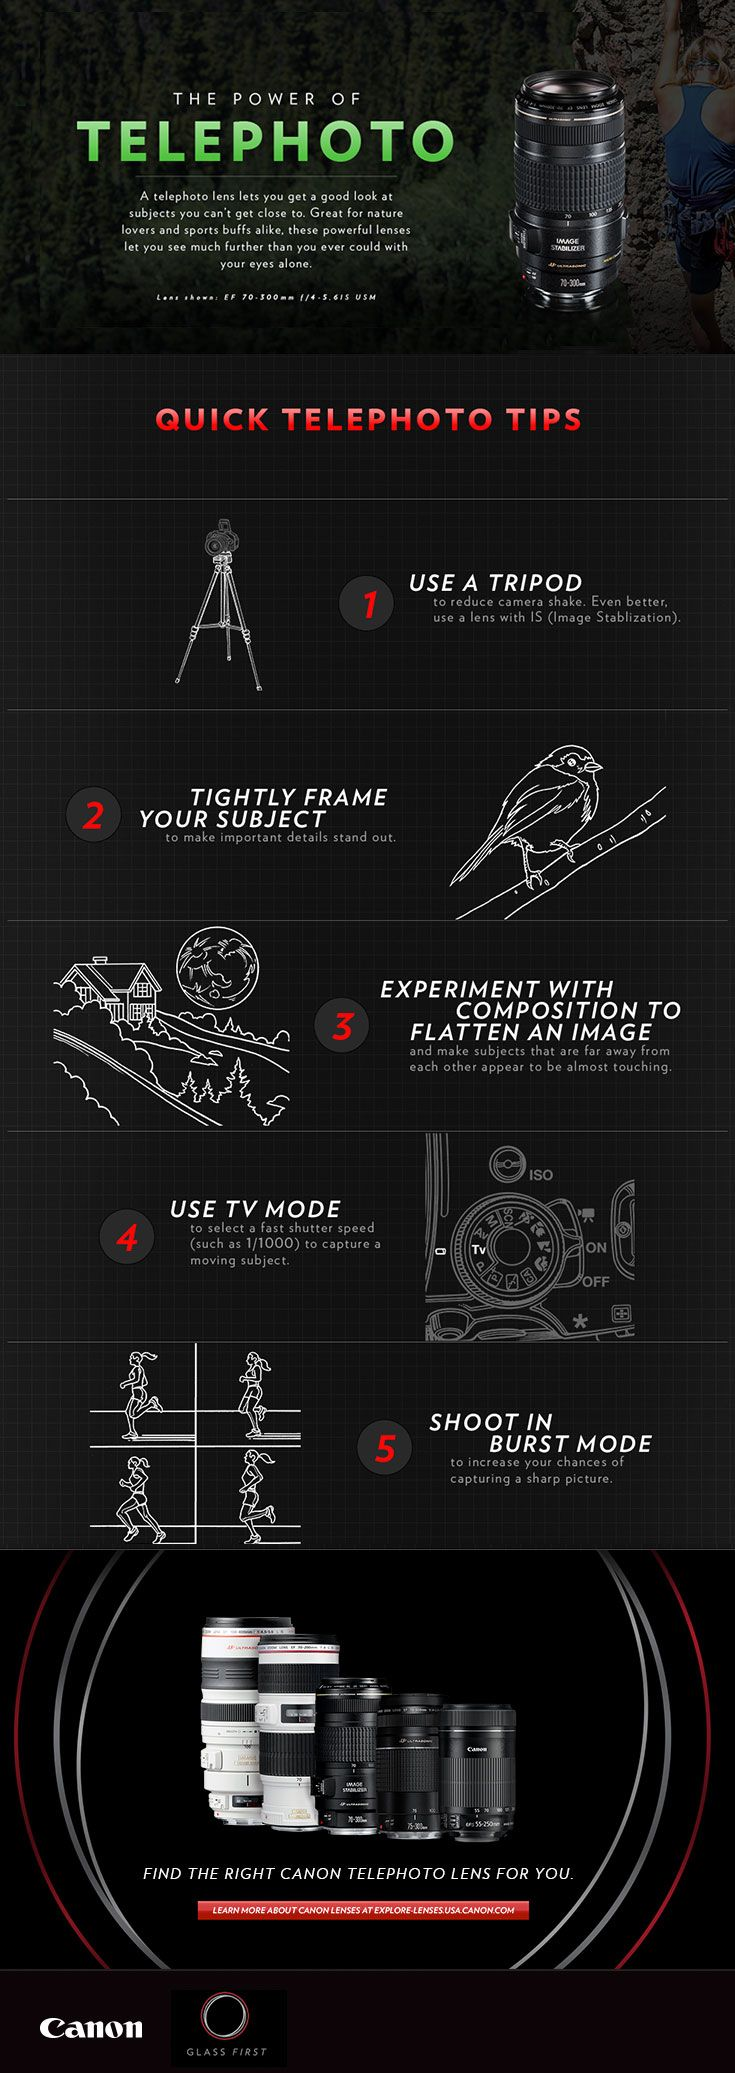 Check out these telephoto lens quick tips from Canon! You'll find a few easy ways to get better nature, sports and people photos.